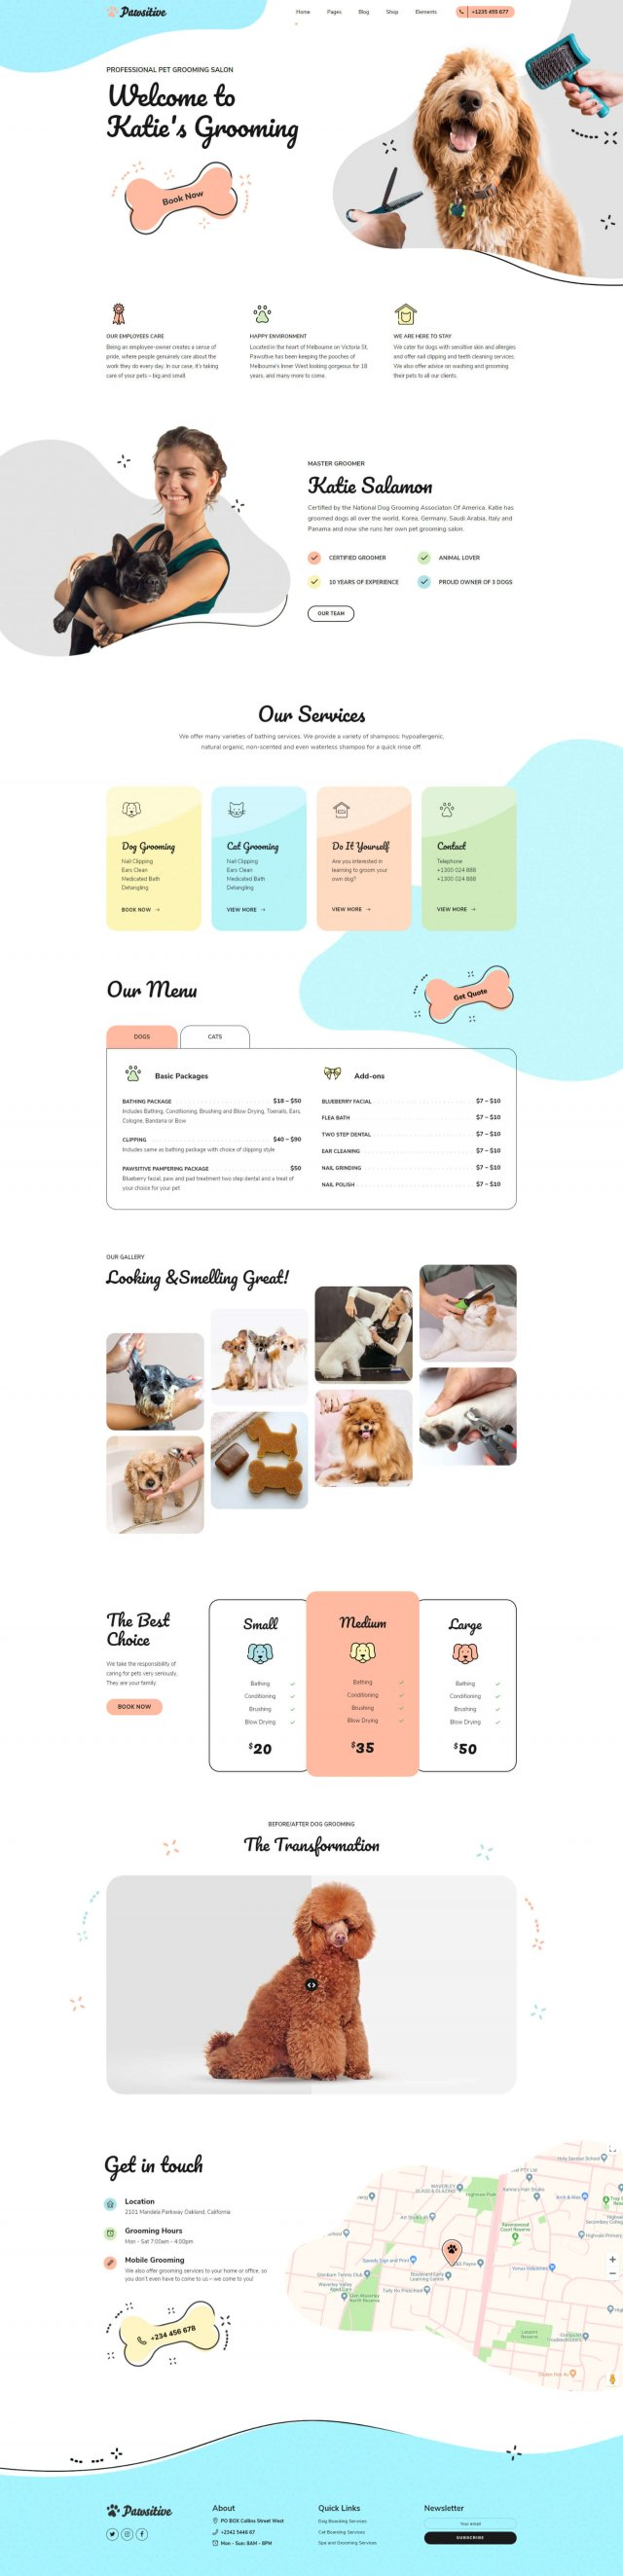 http://pawsitive.bold-themes.com/wp-content/uploads/2019/09/Coco-Home-03-640x2647.jpg